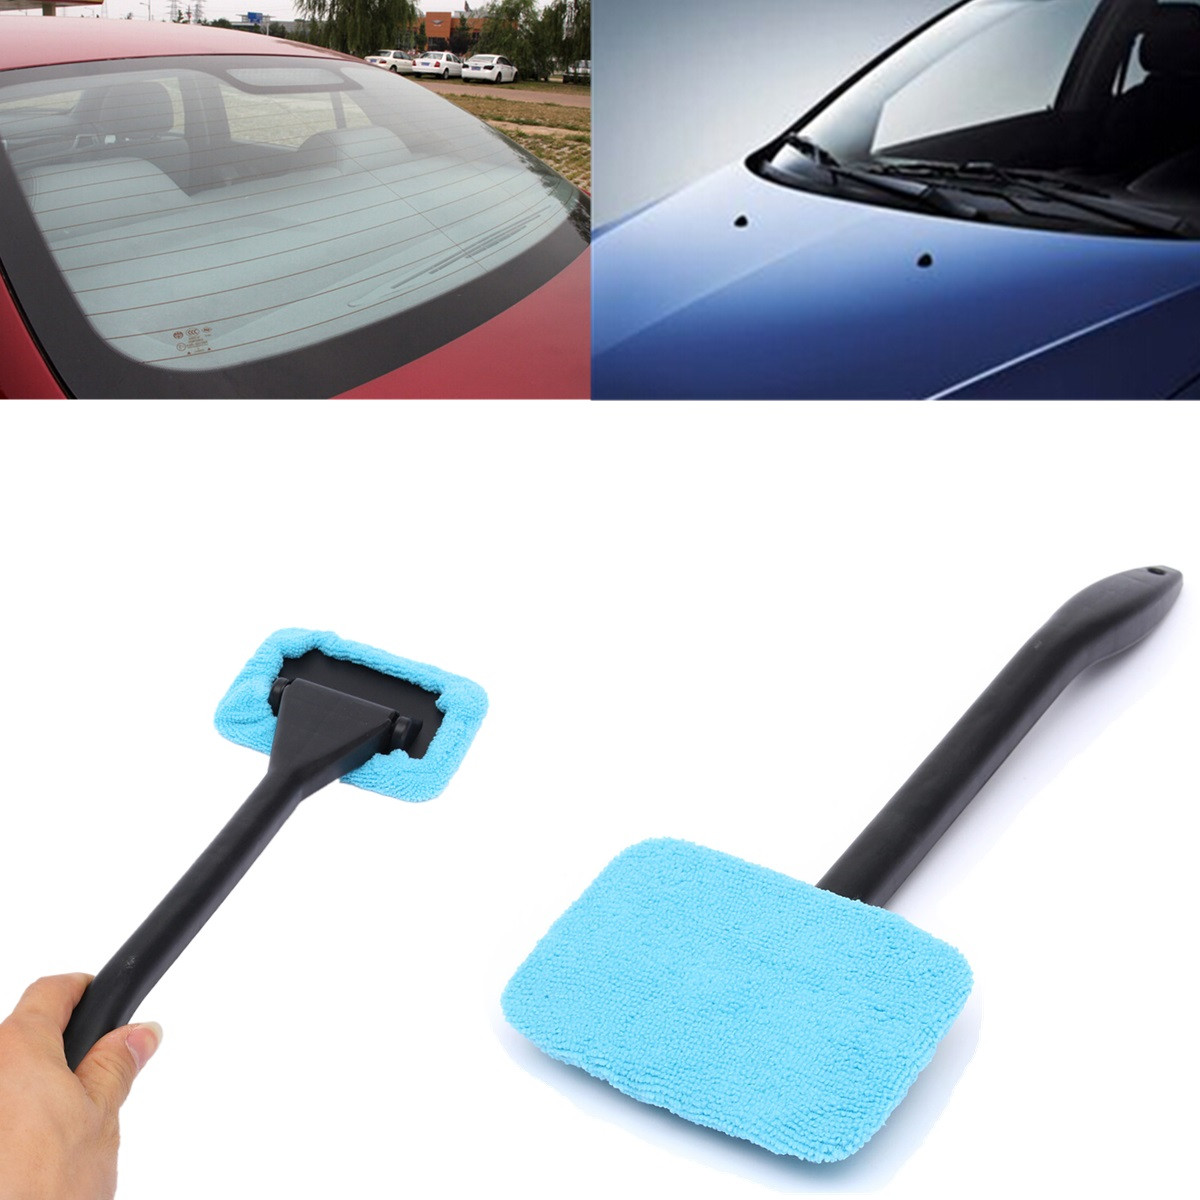 car auto wiper home tv glass window brush handheld windshield cleaner alex nld. Black Bedroom Furniture Sets. Home Design Ideas